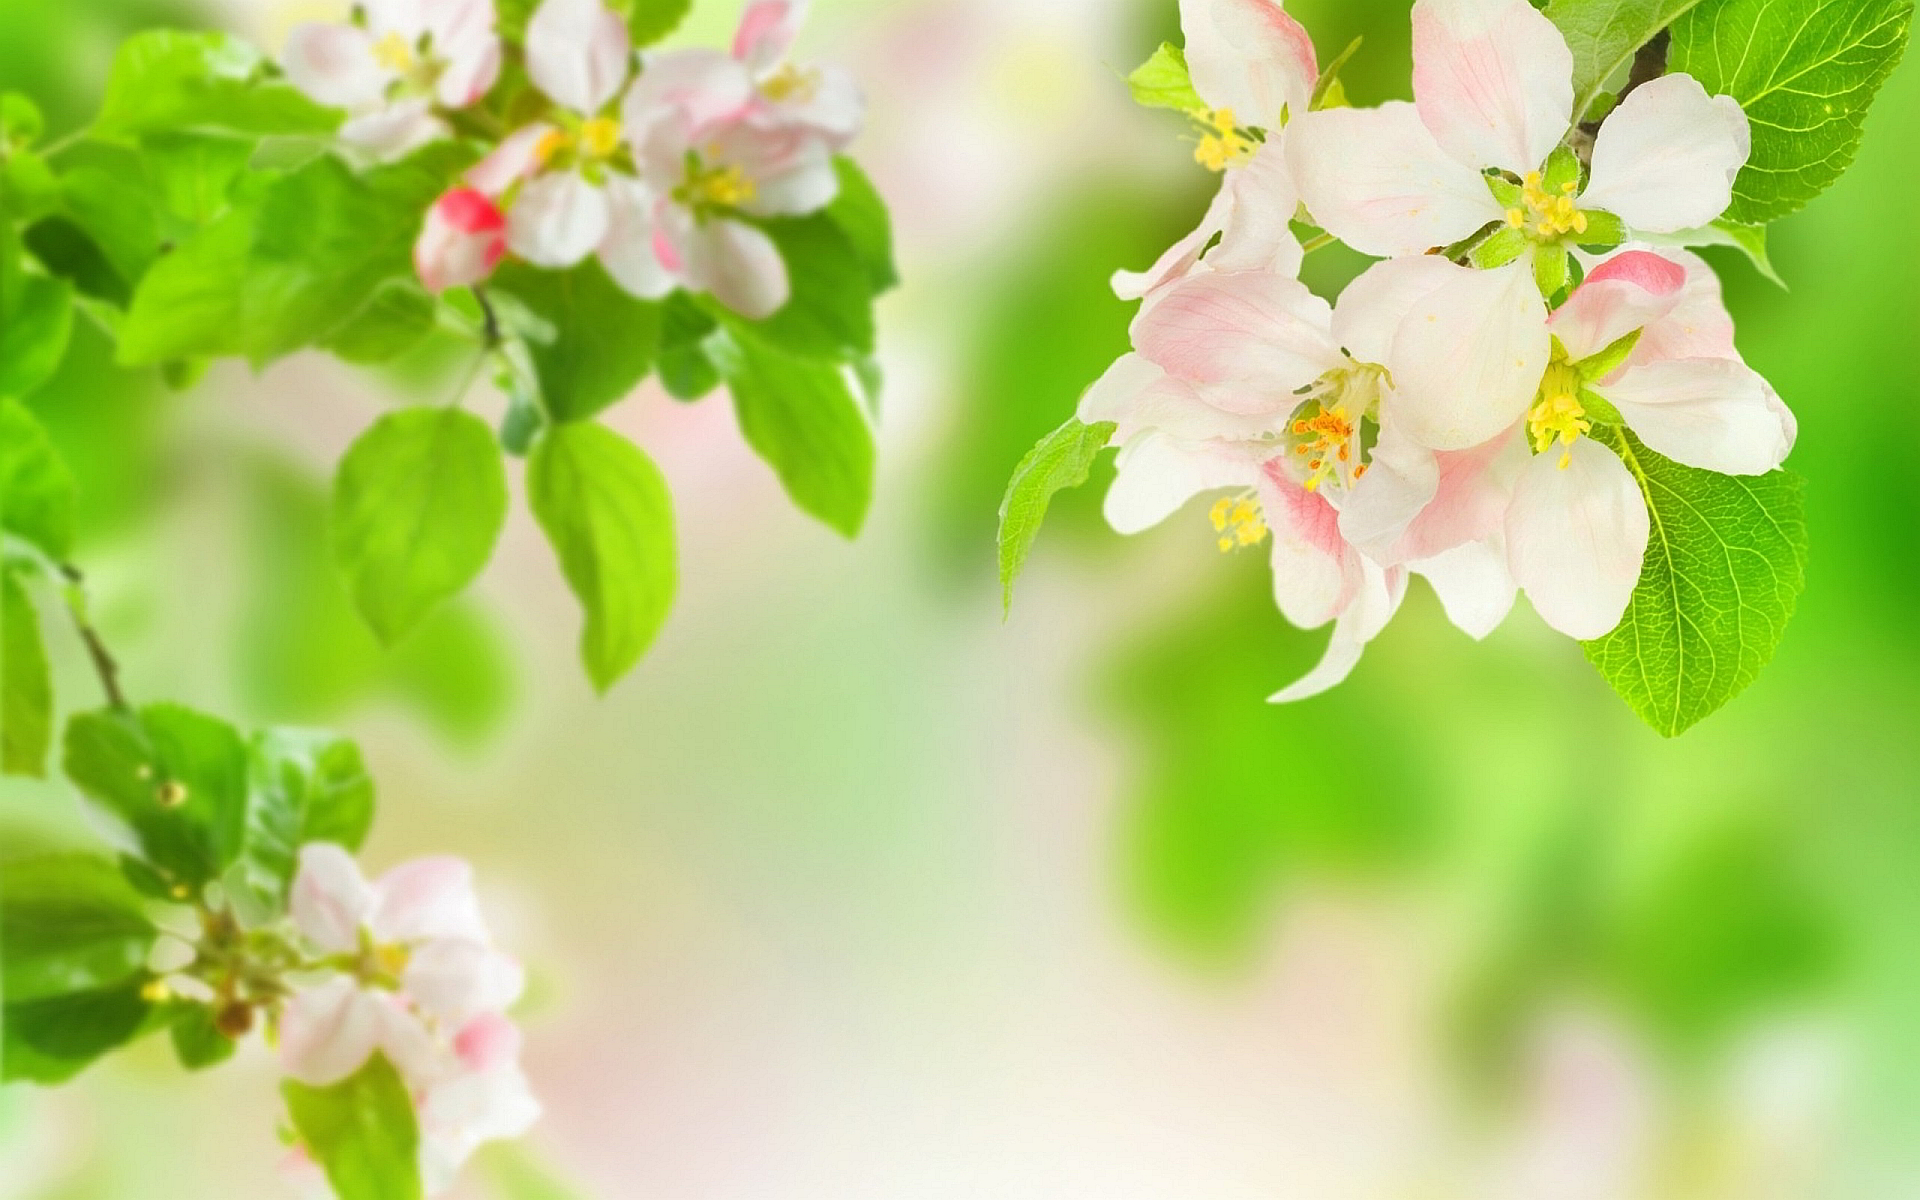 Spring Flower Background Images: Spring Flowers HD Wallpapers